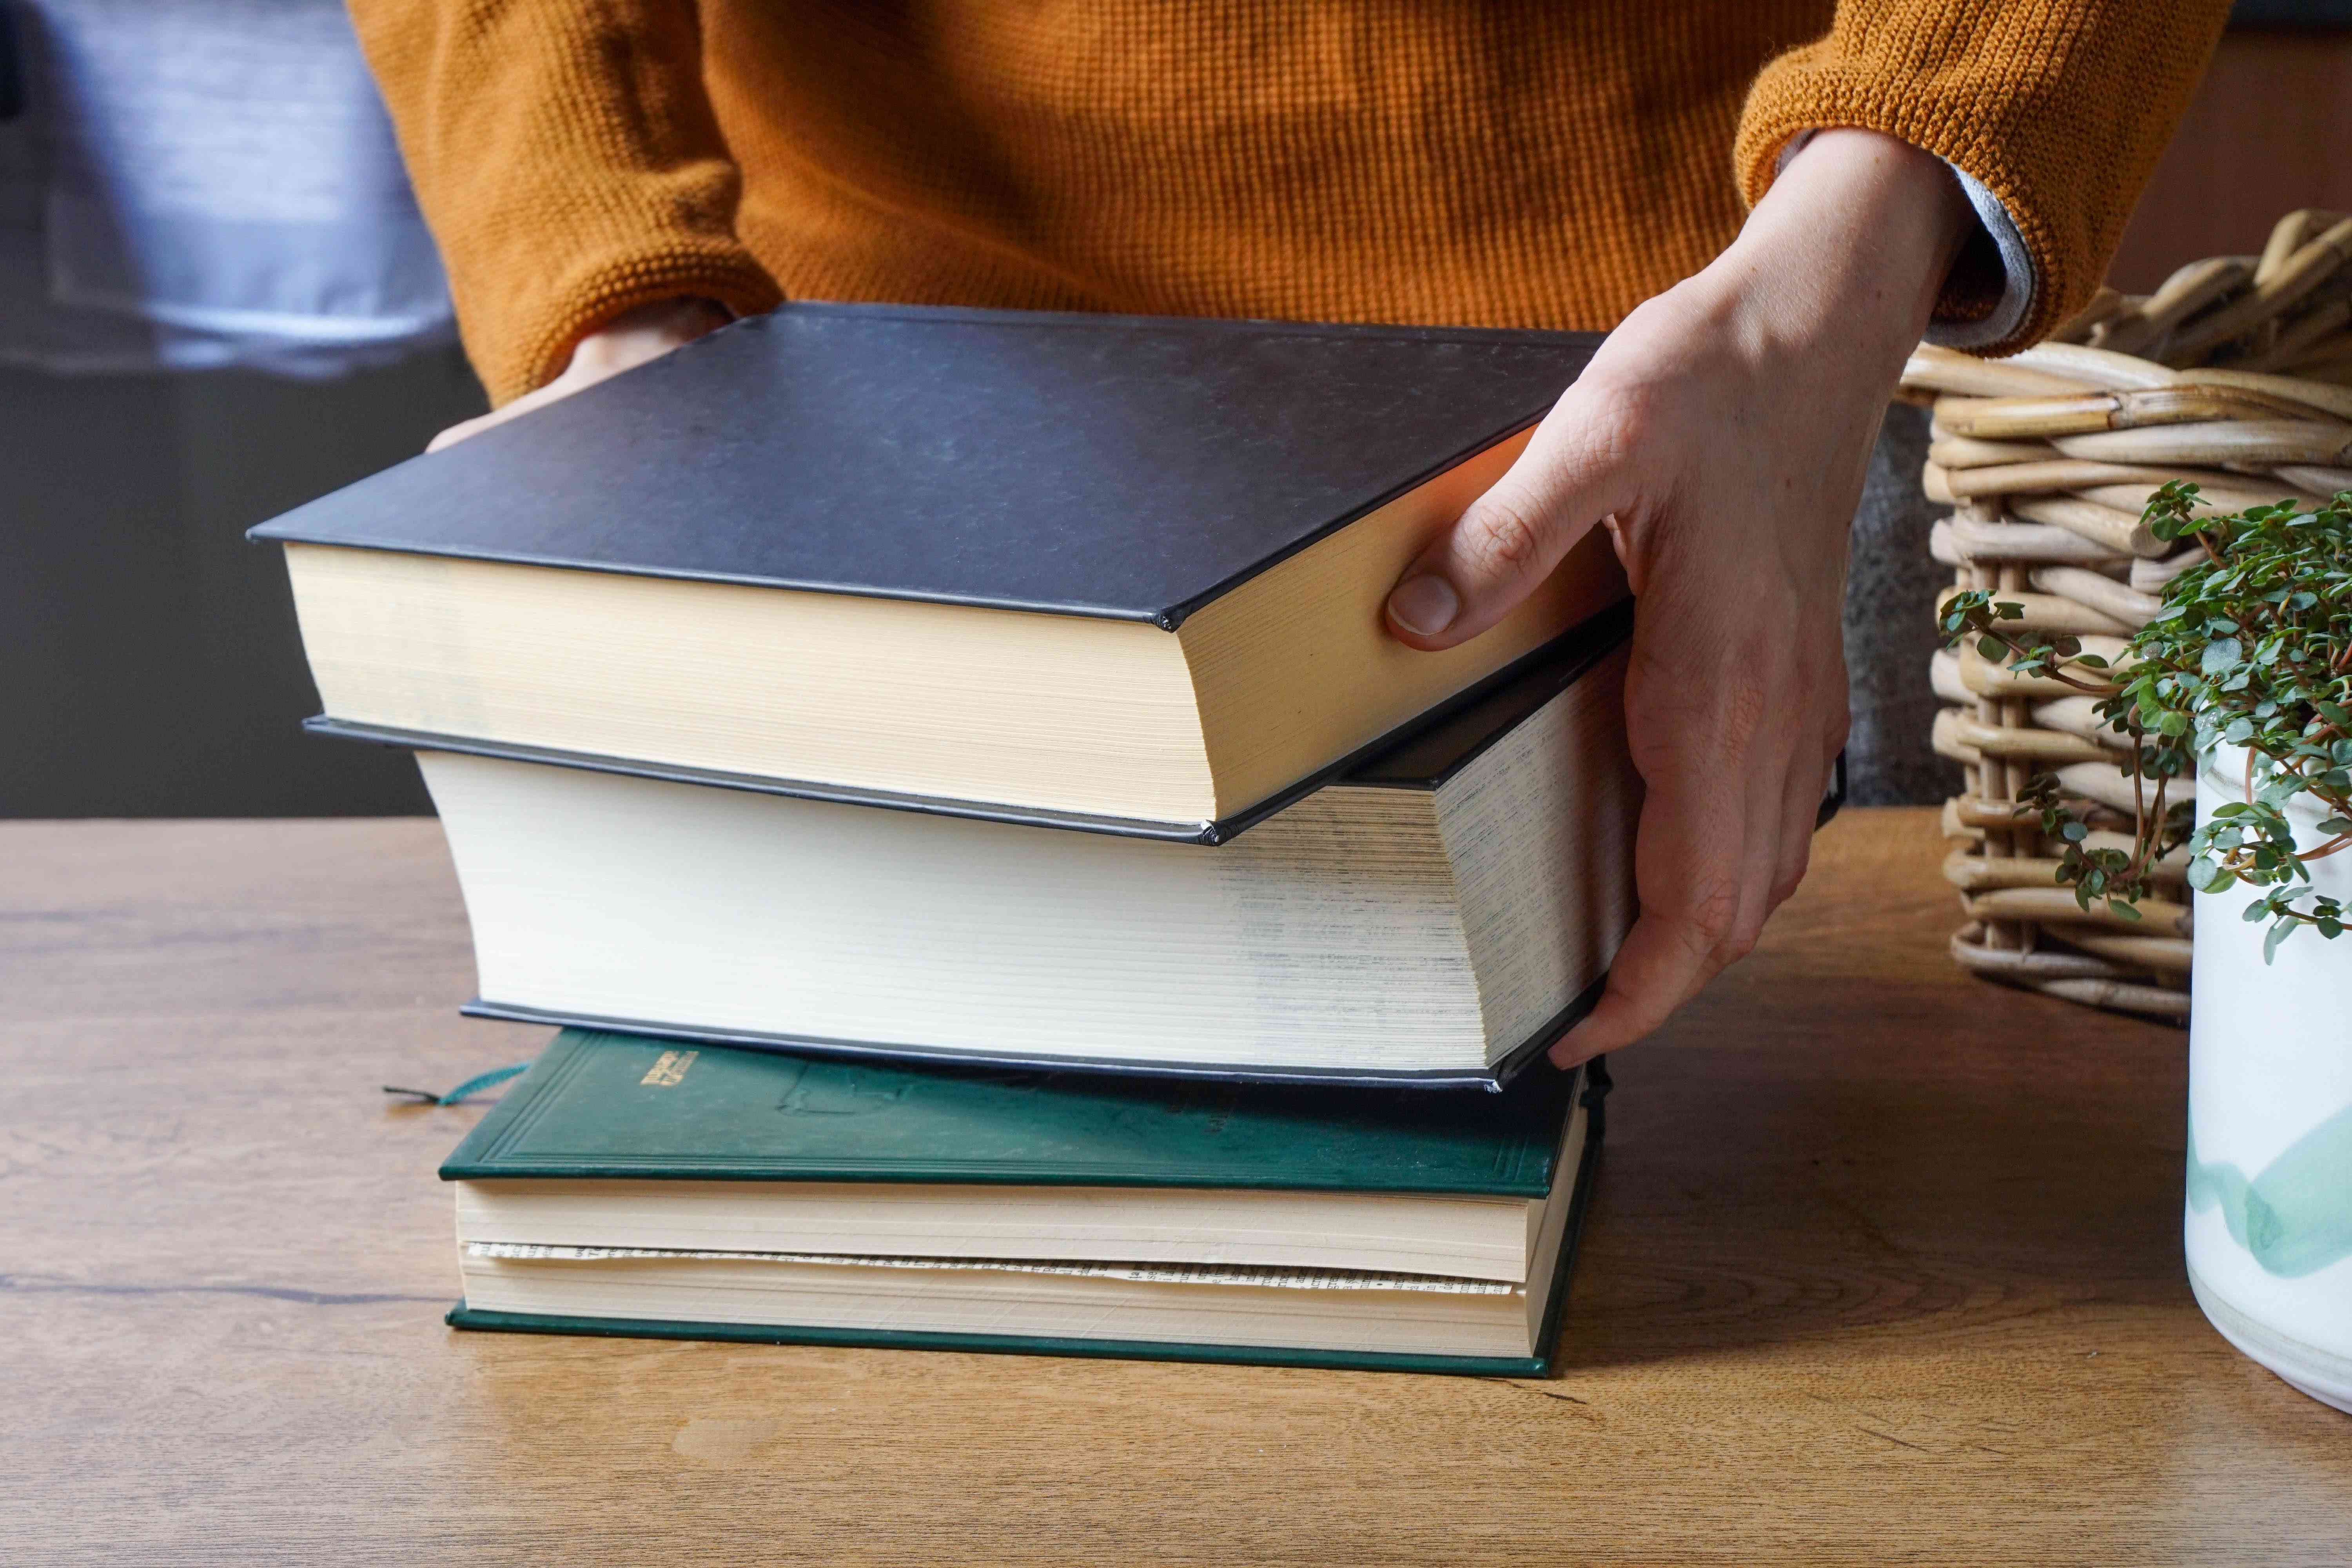 person in orange sweater places heavy books to press flowers in book on bottom